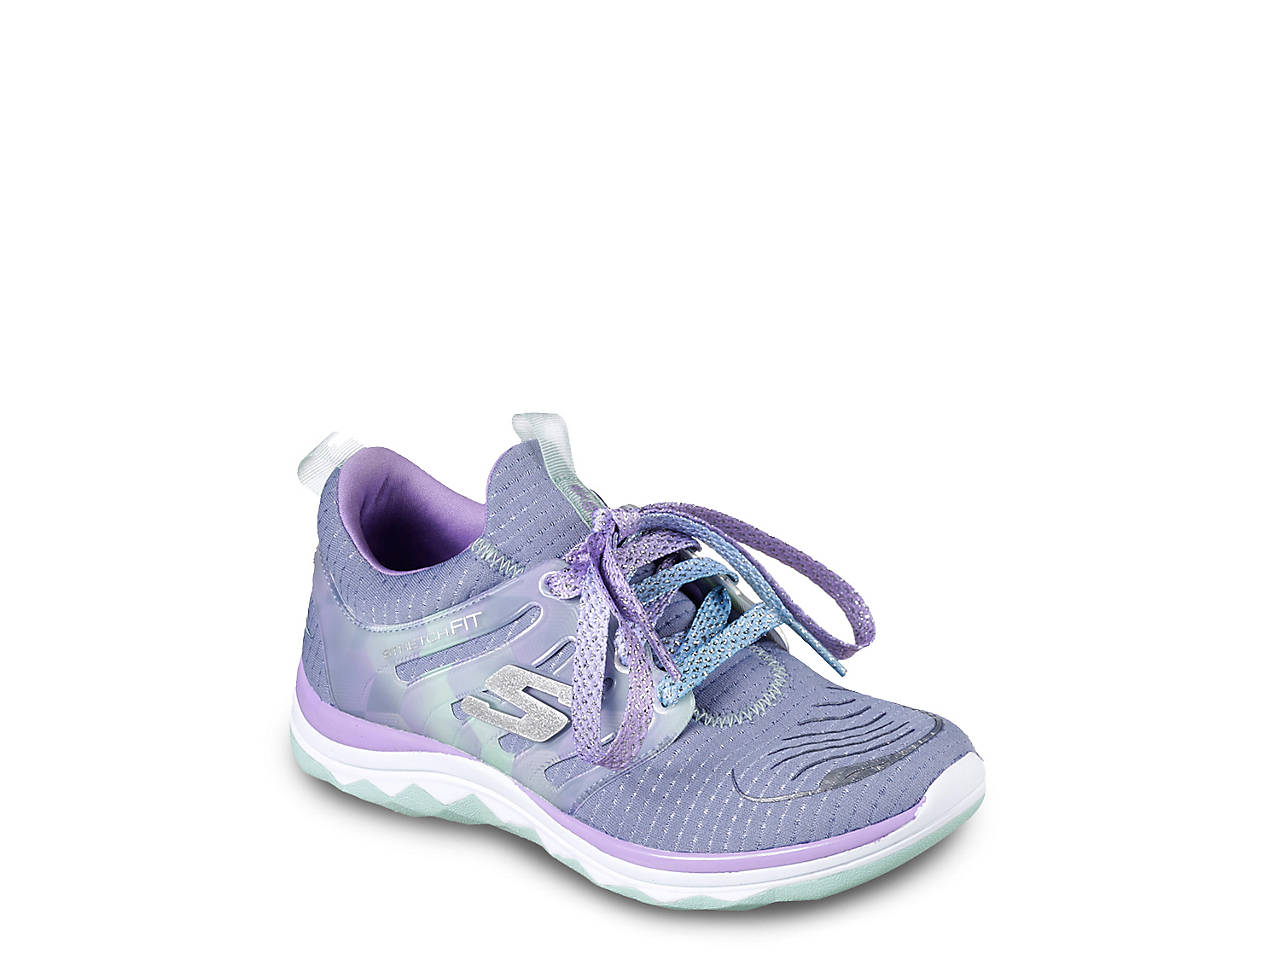 0f7f270b4be7 Skechers Diamond Runner Toddler   Youth Running Shoe Kids Shoes